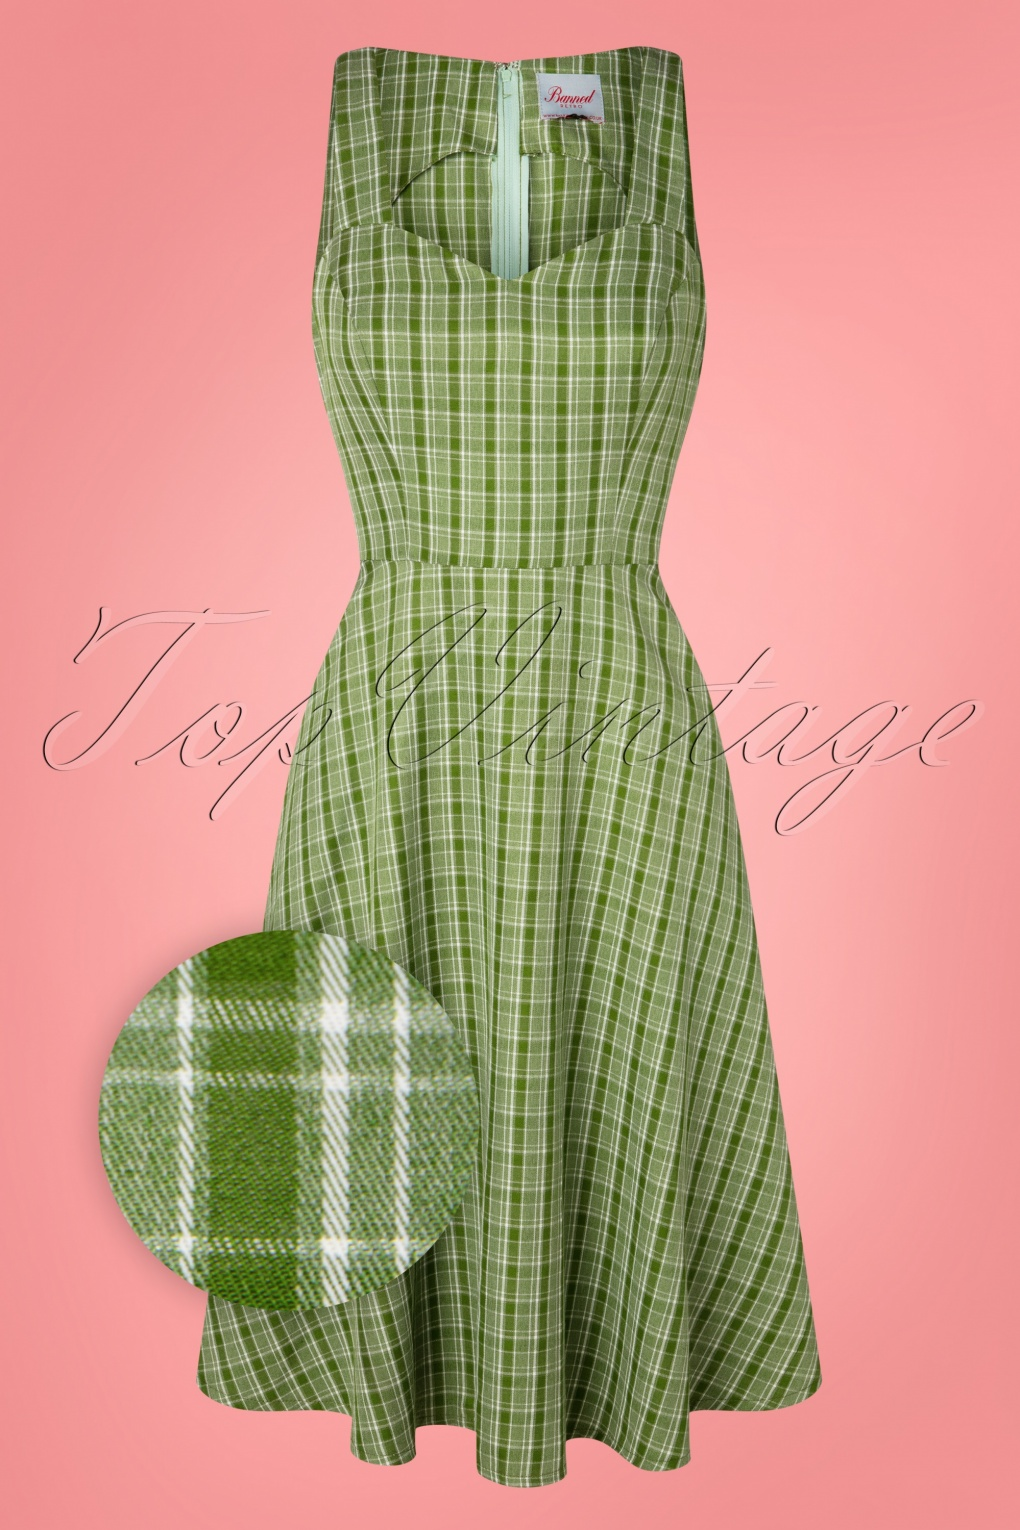 60s Dresses | 1960s Dresses Mod, Mini, Hippie 50s Lady Luck Swing Dress in Green £42.72 AT vintagedancer.com